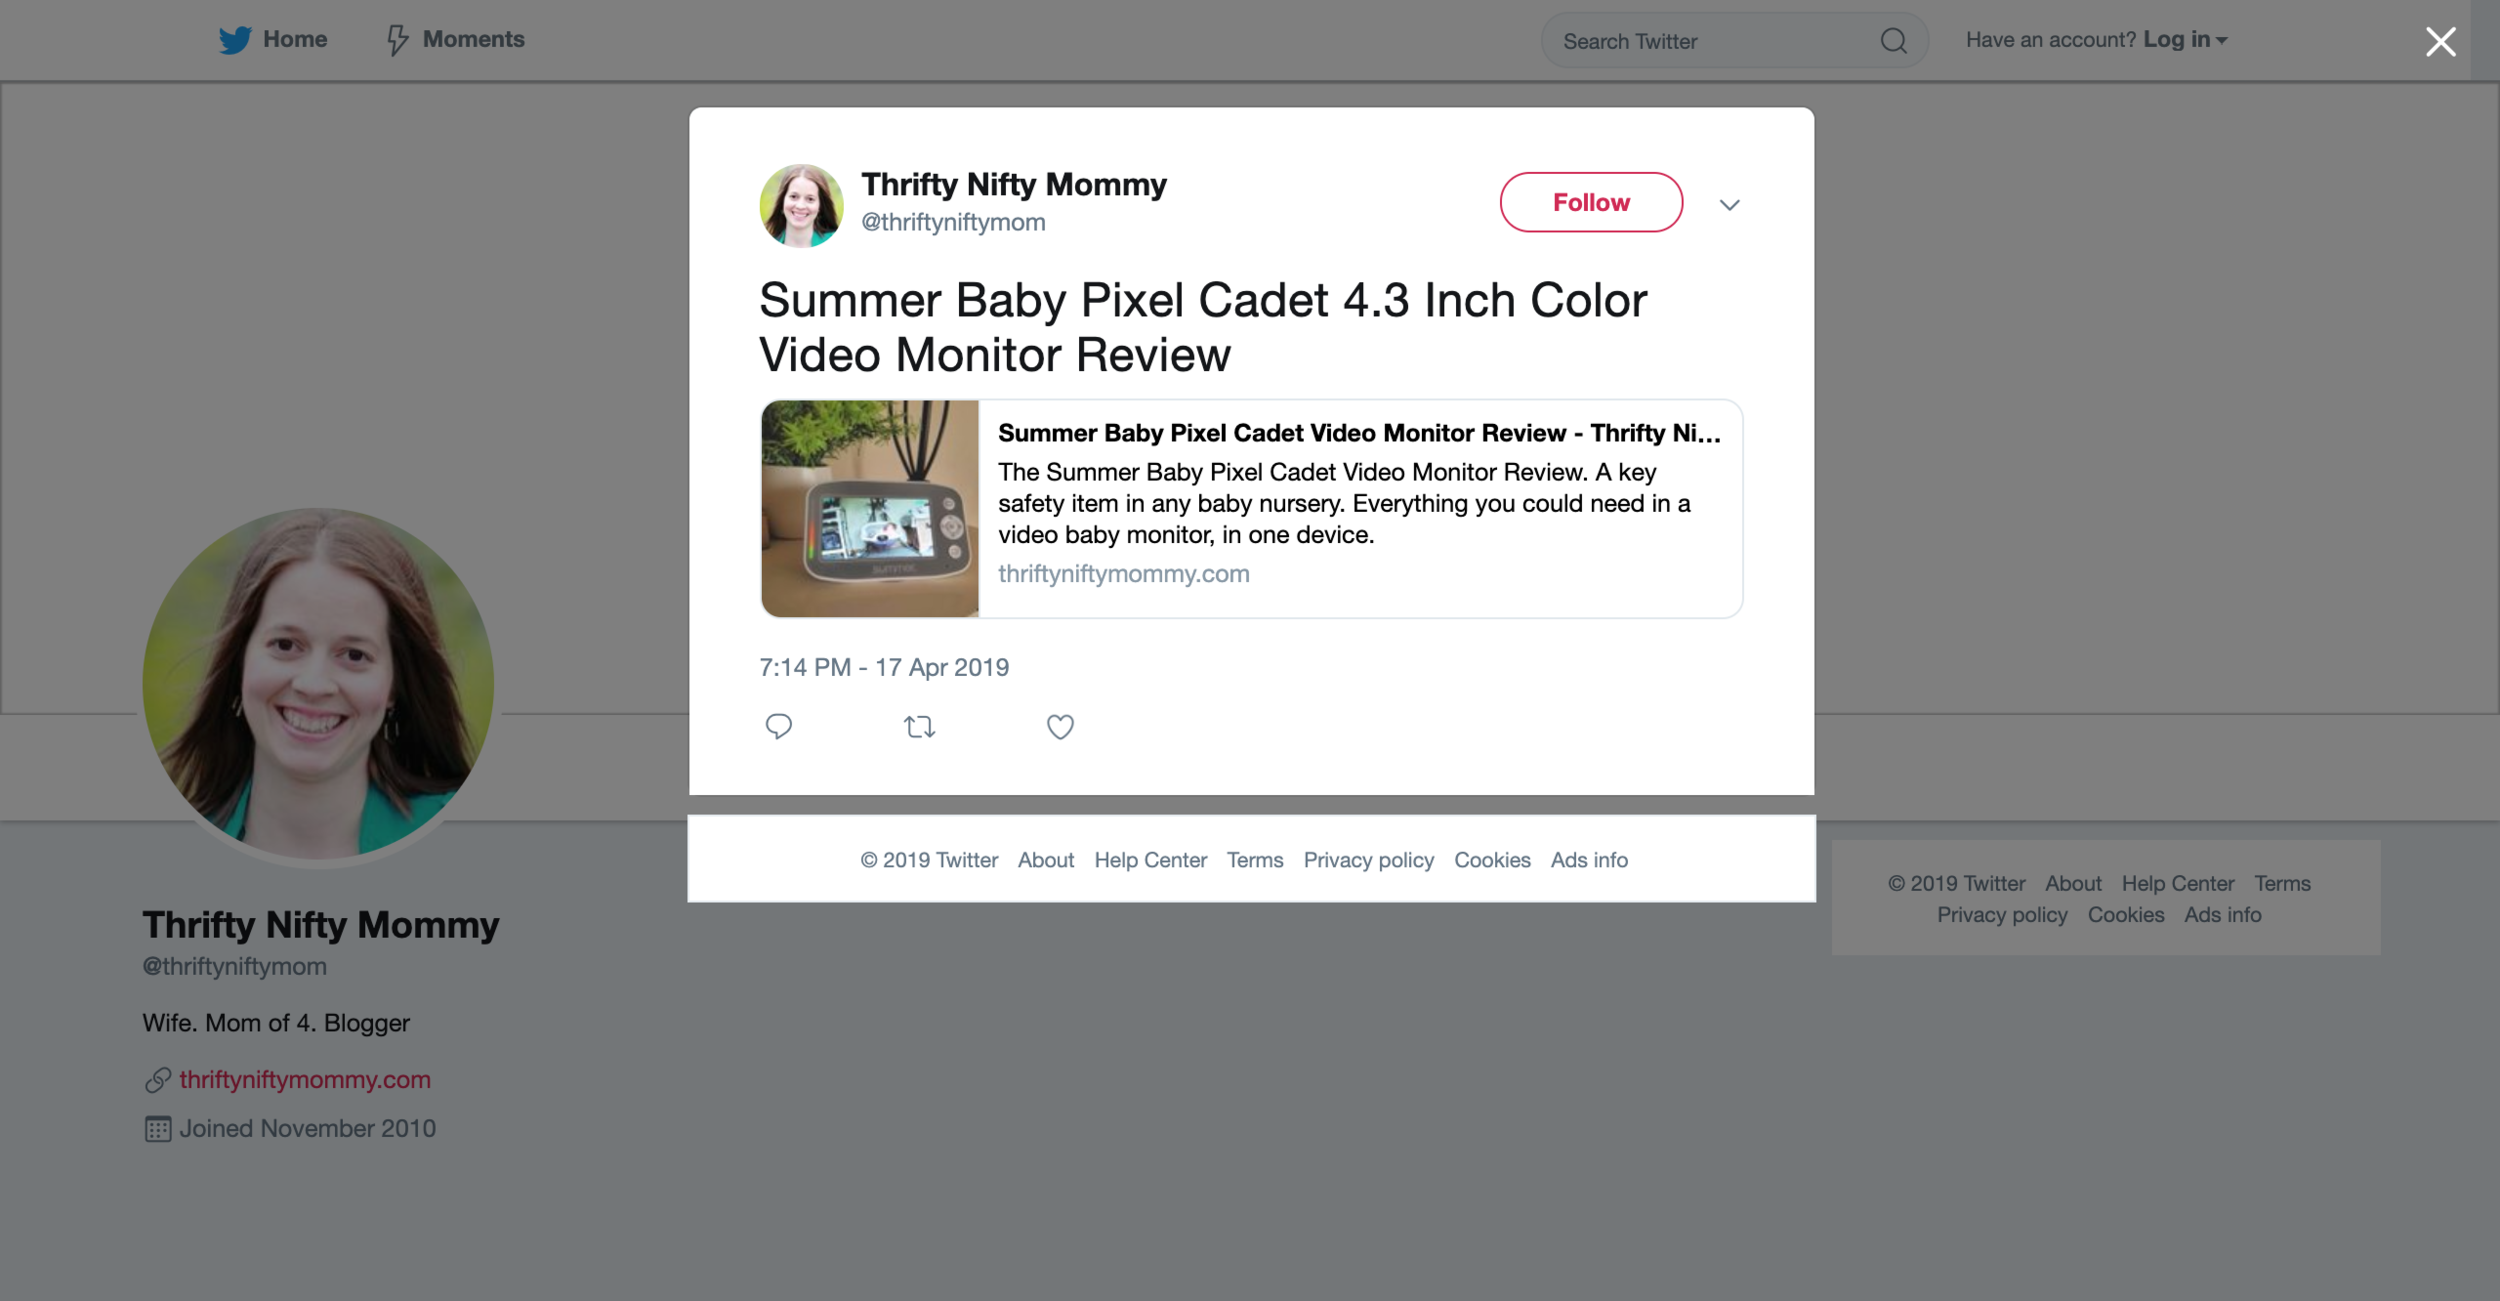 2019.04.11_Thrifty Nifty Mommy, Twitter_Summer Baby Pixel Cadet.png